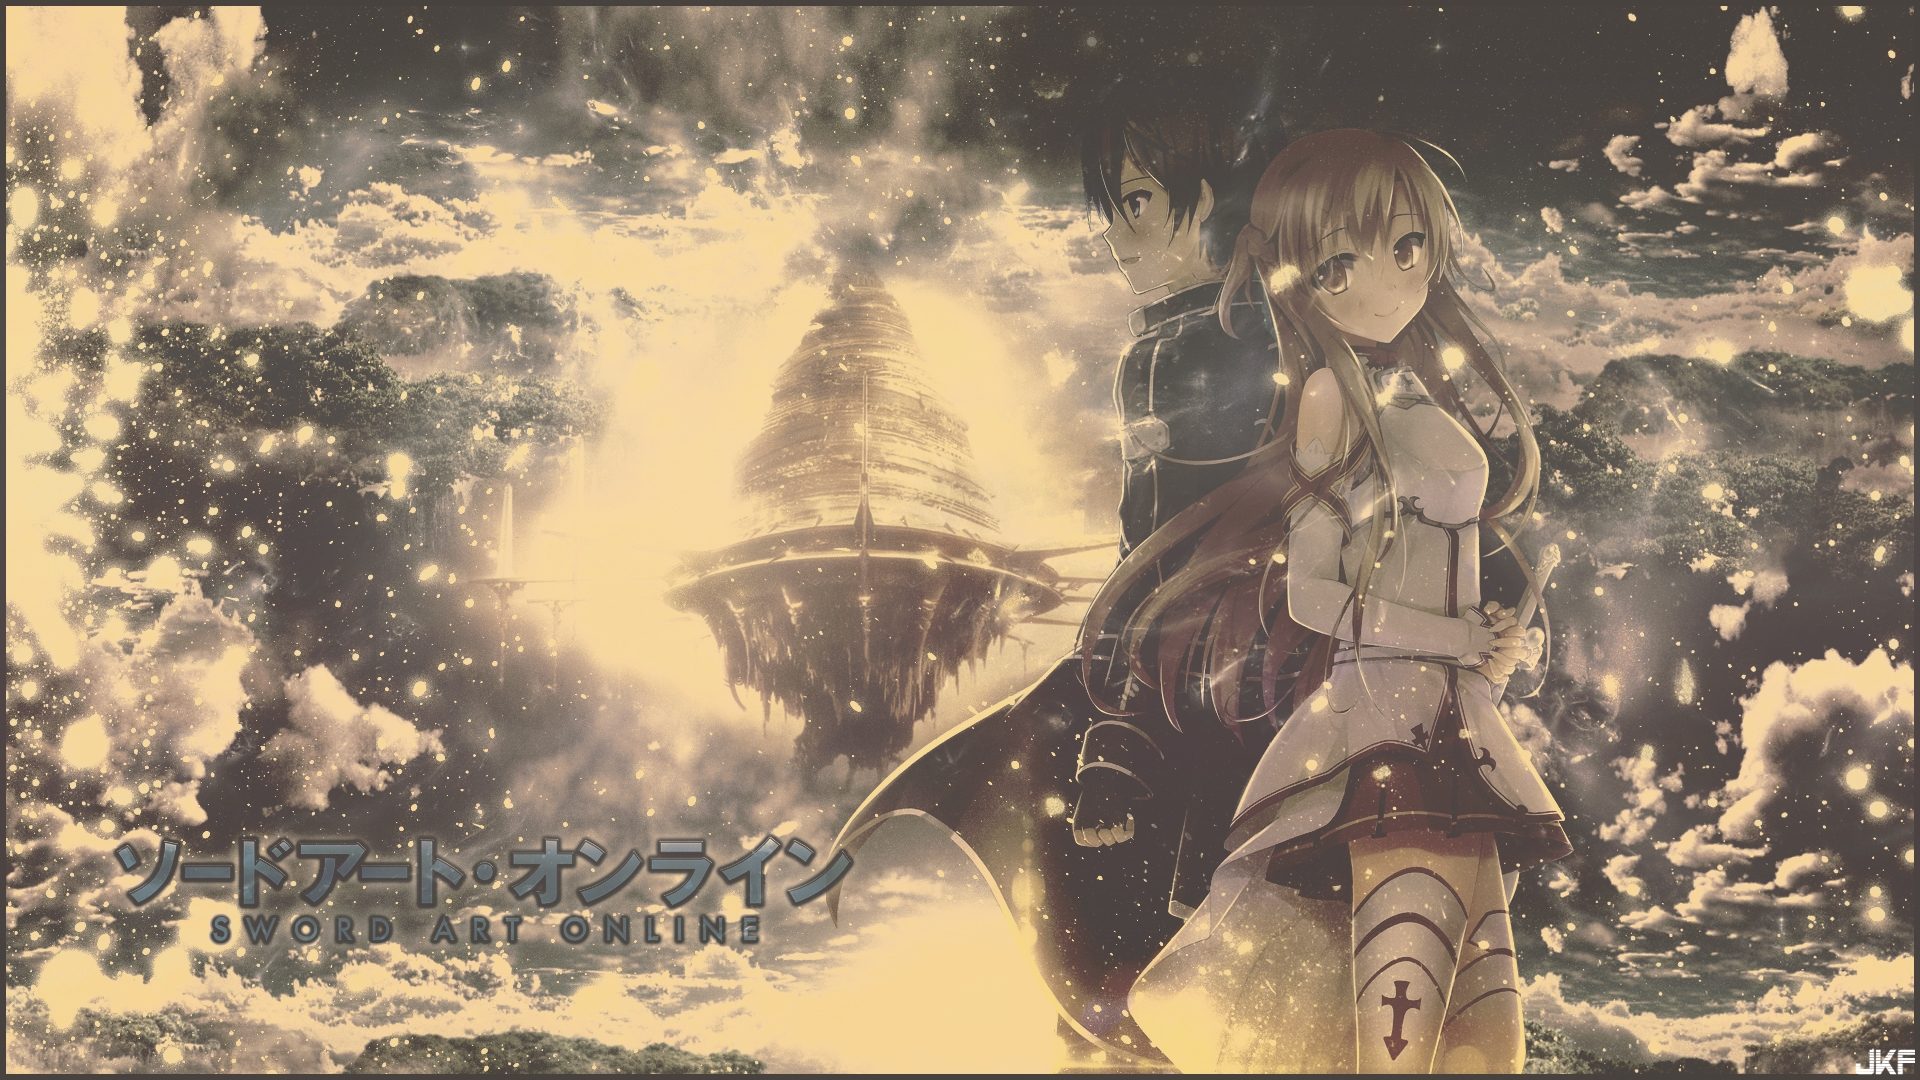 asuna_and_kirito_wallpaper_by_dinocojv-d922341.jpg